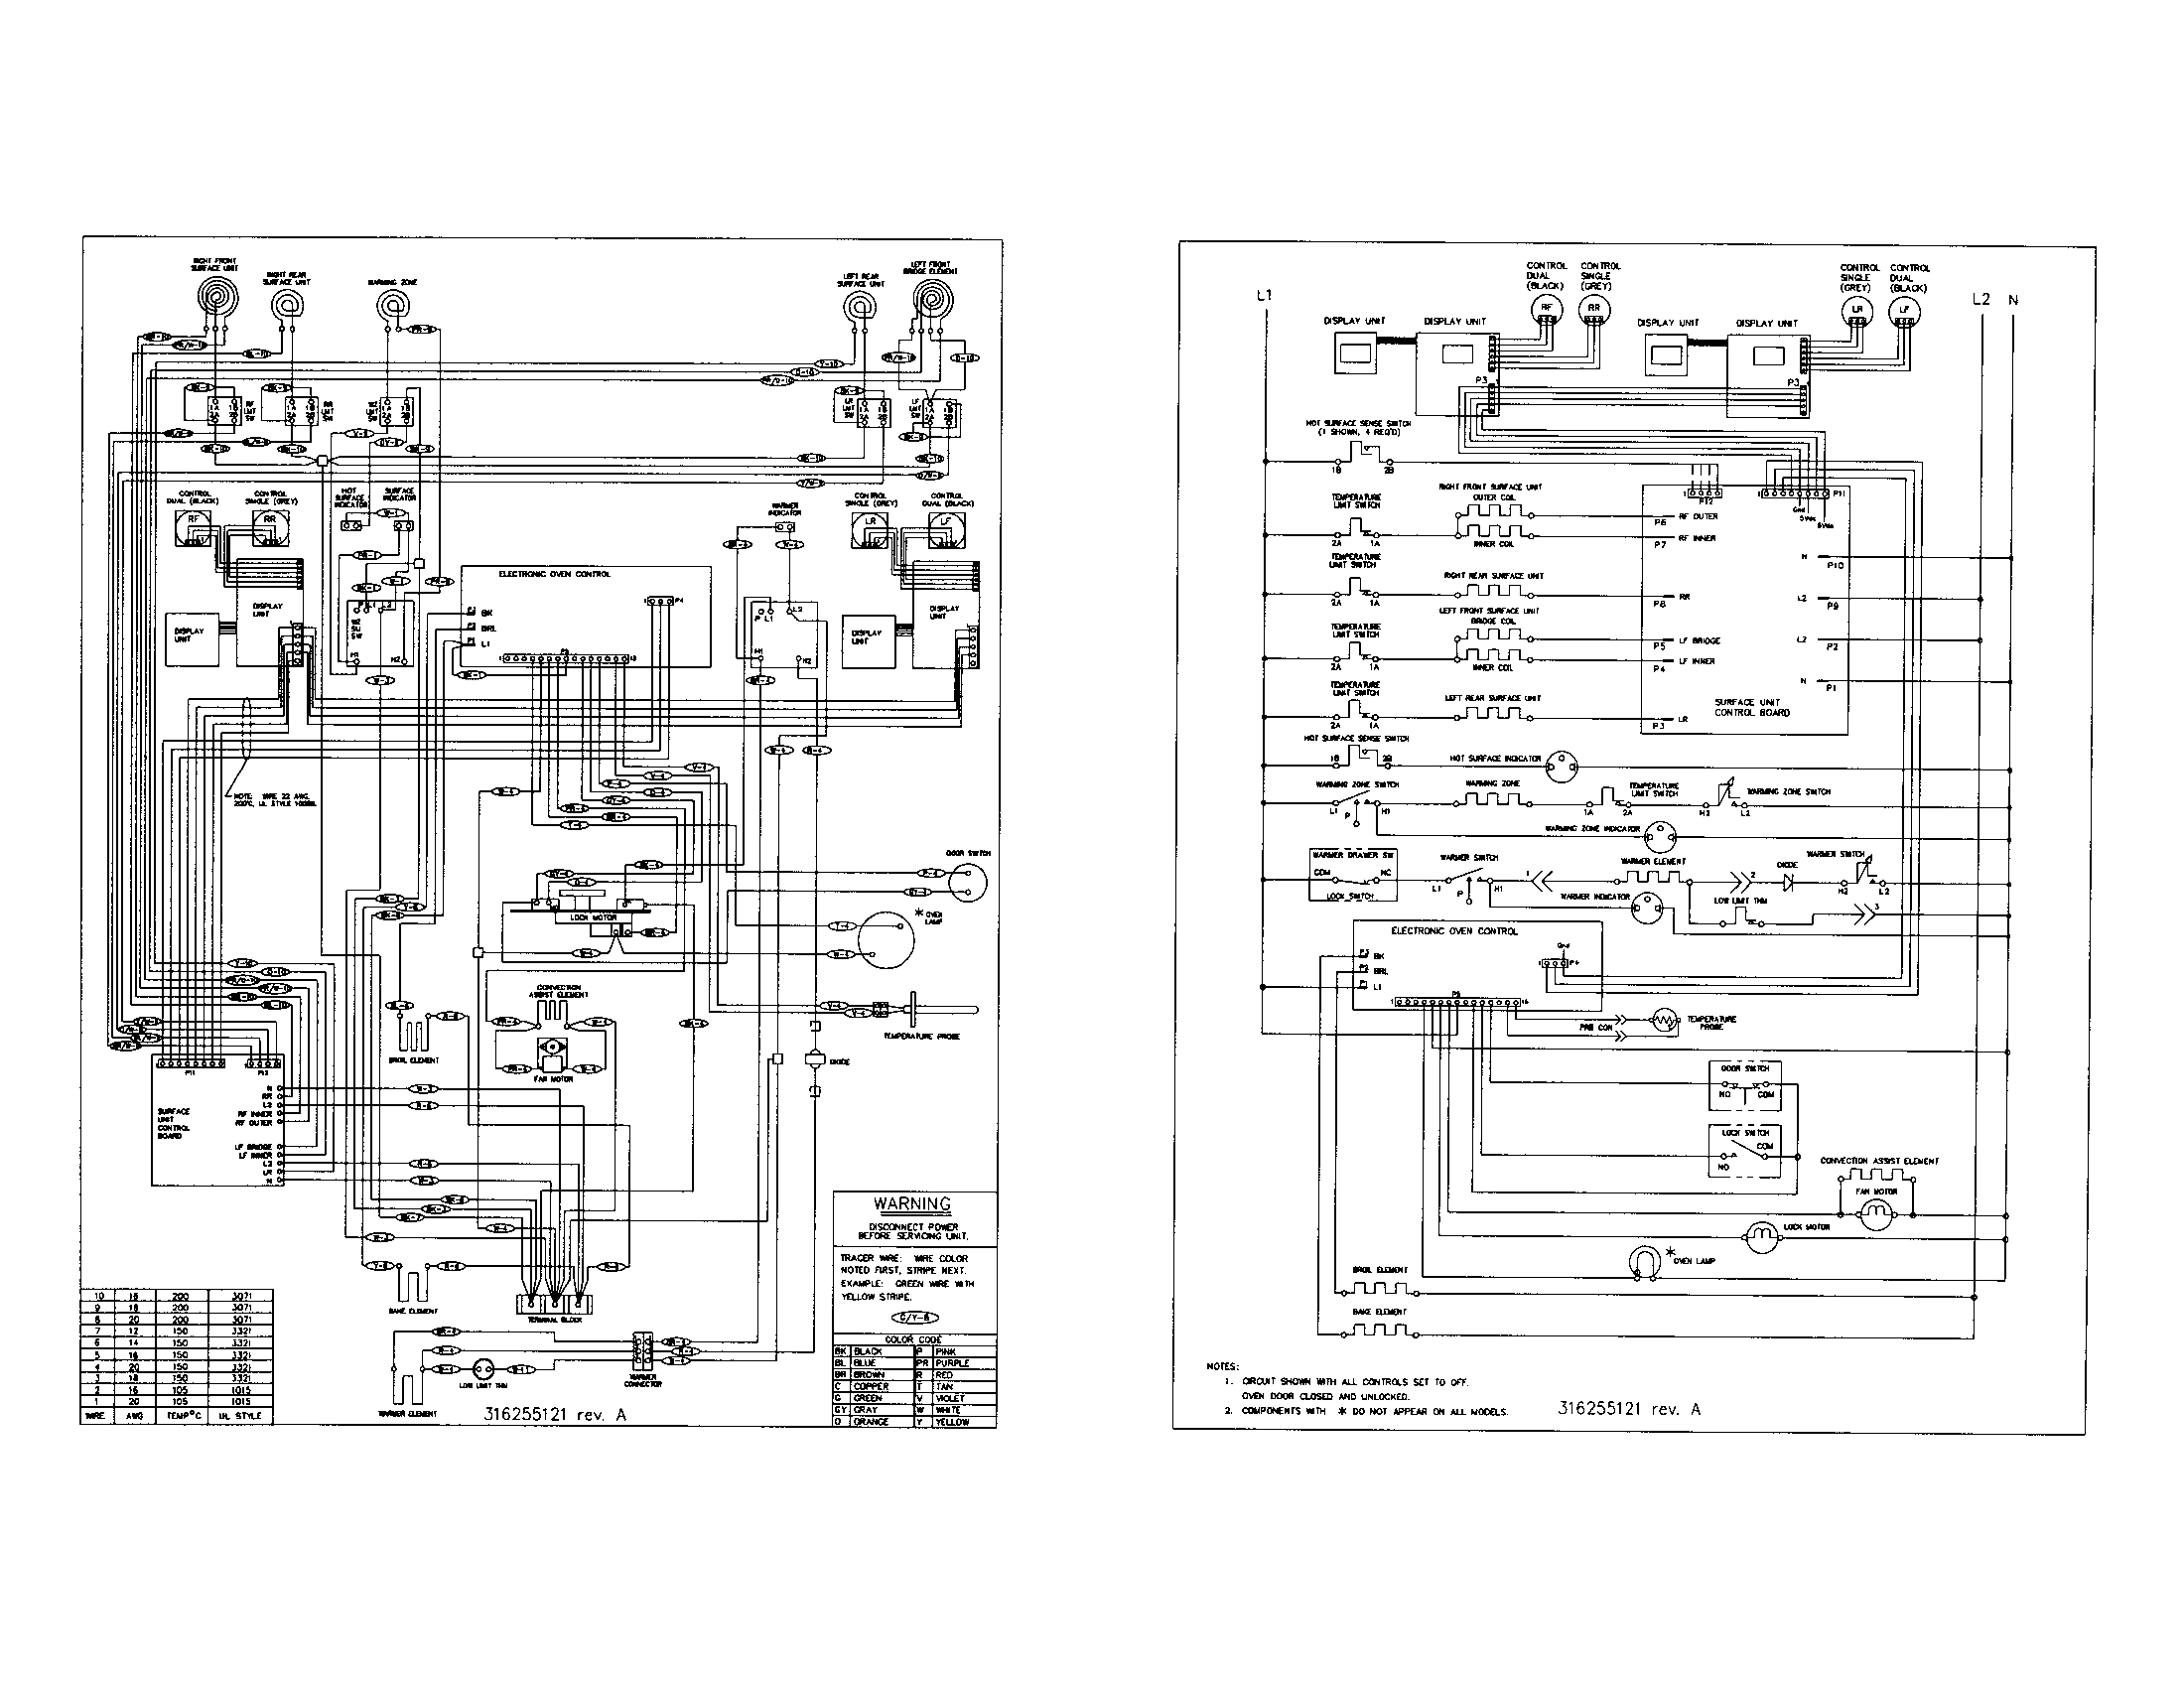 whirlpool electric dryer wiring diagram with Index on 4234703030 further Bosch Dishwasher Parts Schematic Bosch Refrigerator Parts List Bosch Dishwasher Wiring Diagram In P0308153 00008  Bosch Exxcel Dishwasher Parts Diagram furthermore Amana Refrigerator Problems Not Cooling also Index together with Whirlpool Gas Range Wiring Diagram.